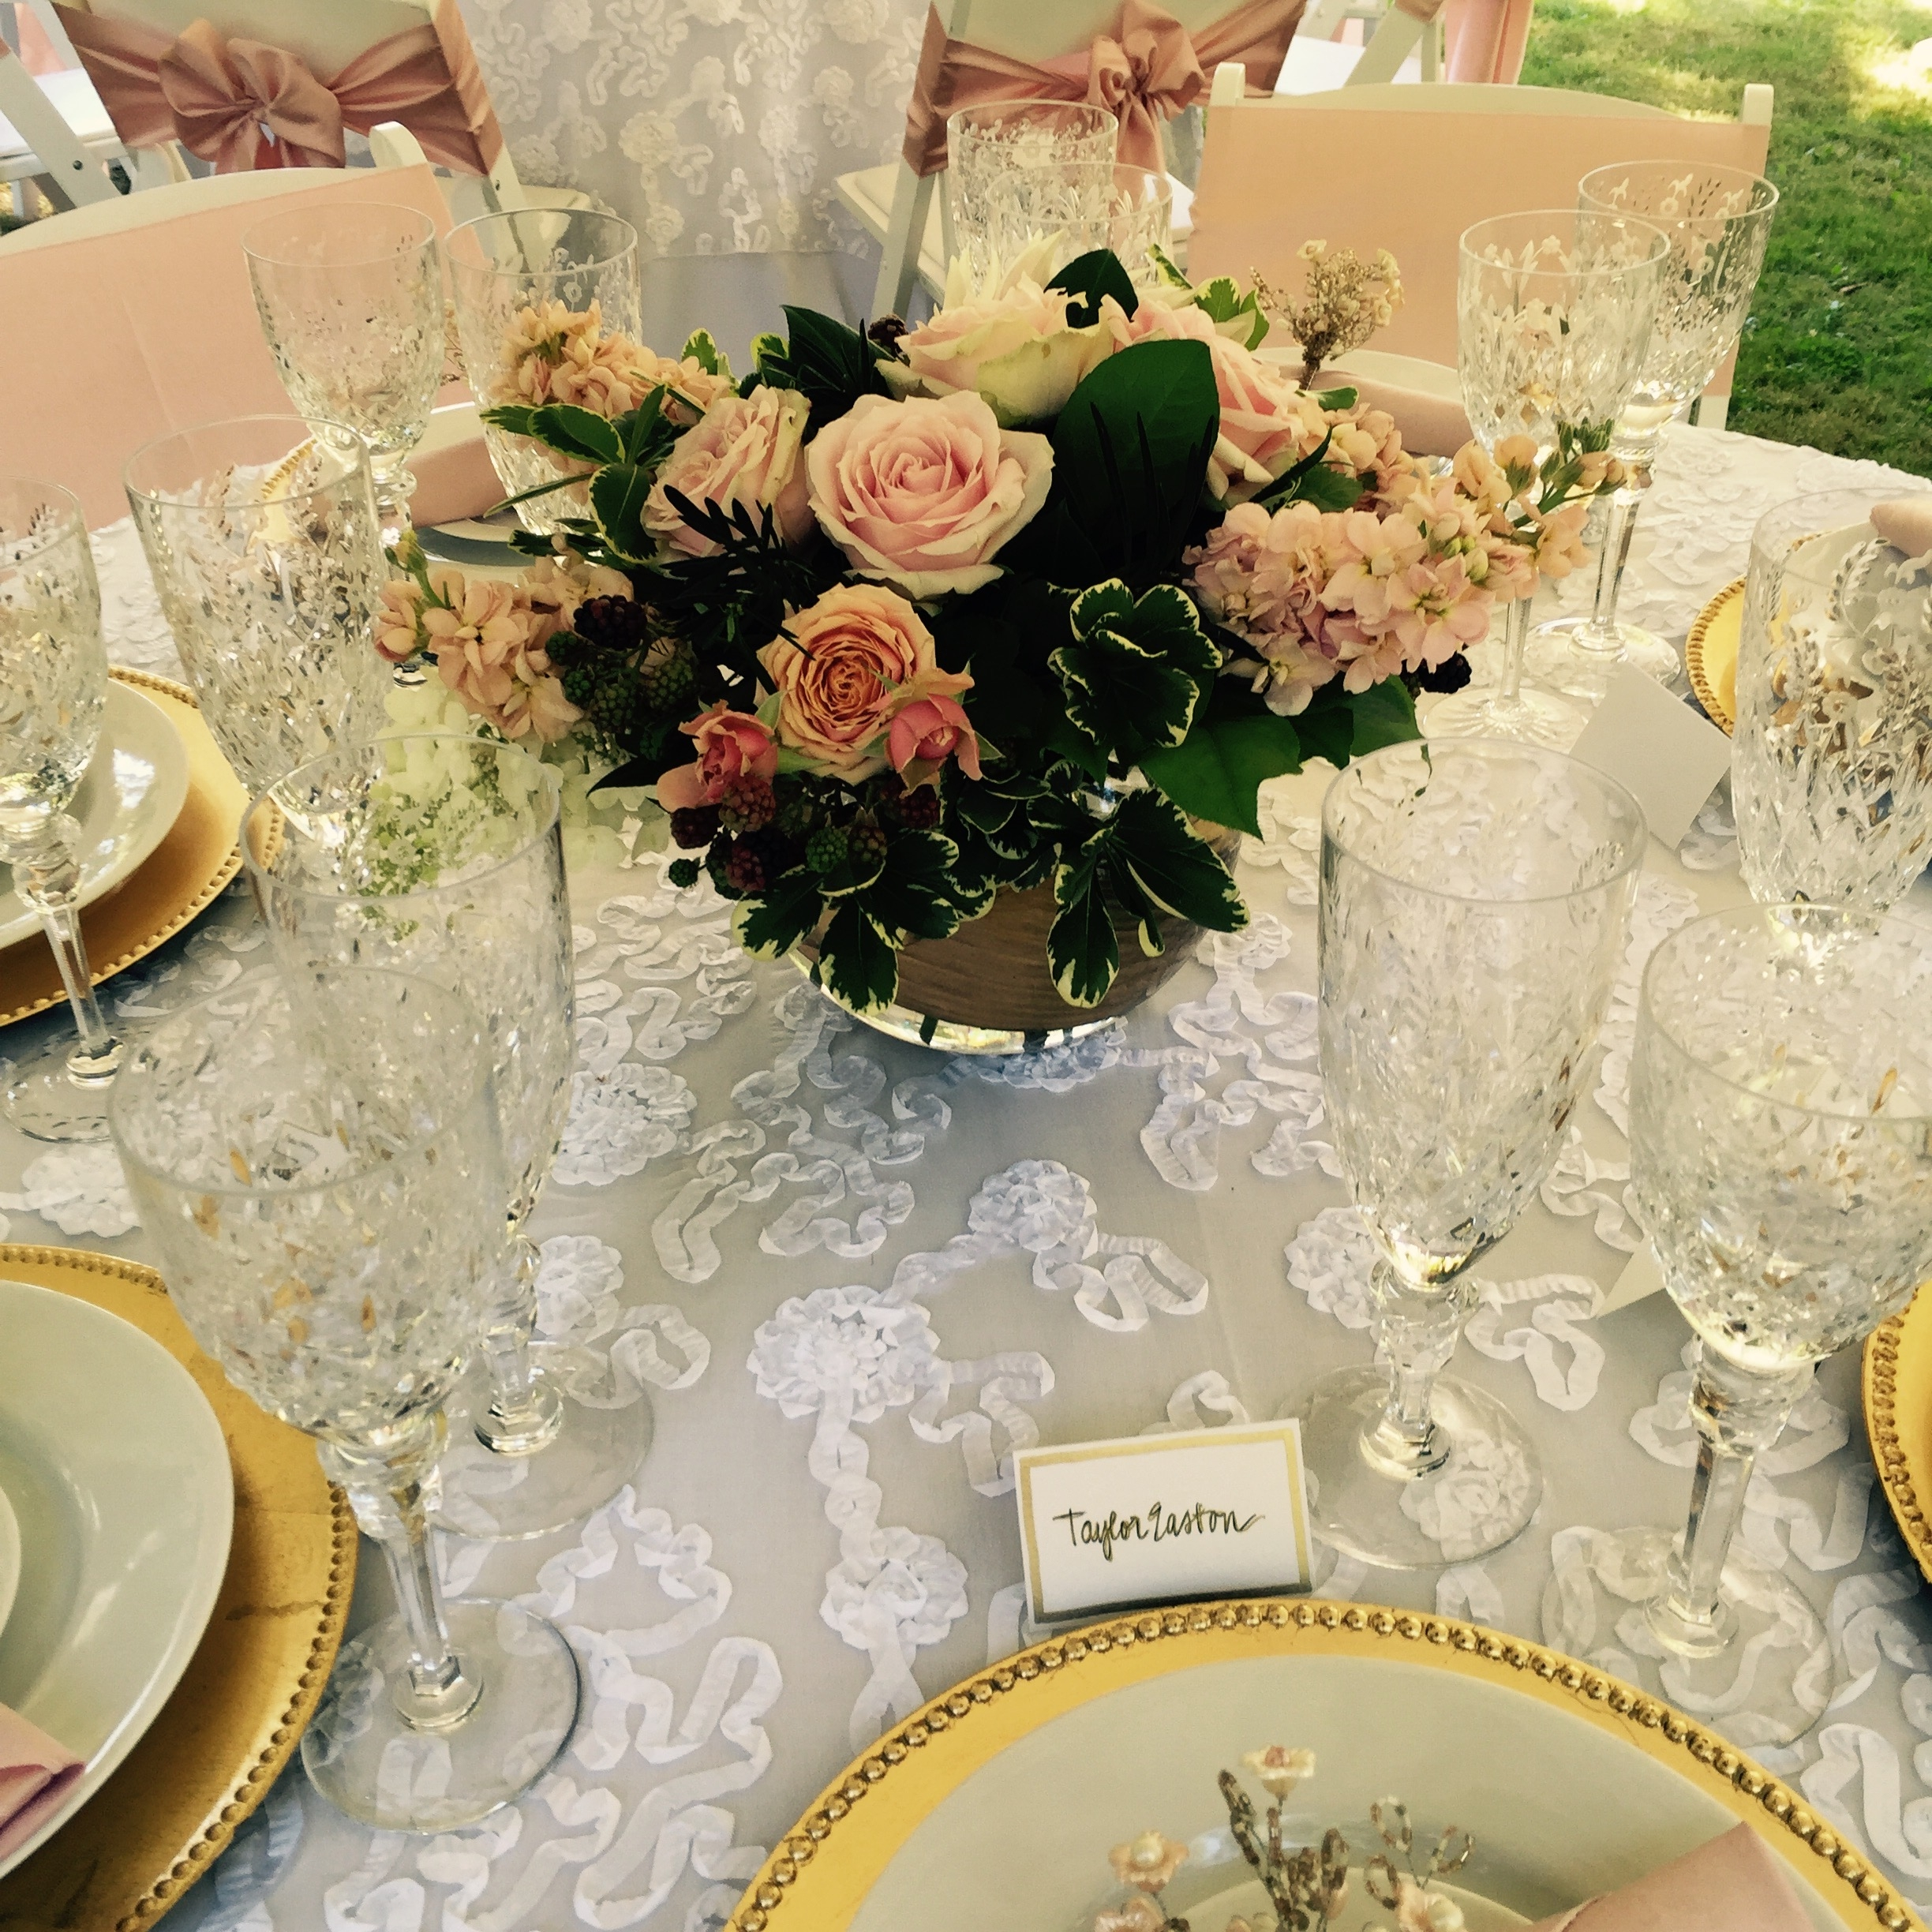 Blush centerpiece with hydrangeas, dahlias, stock, roses and gold accent